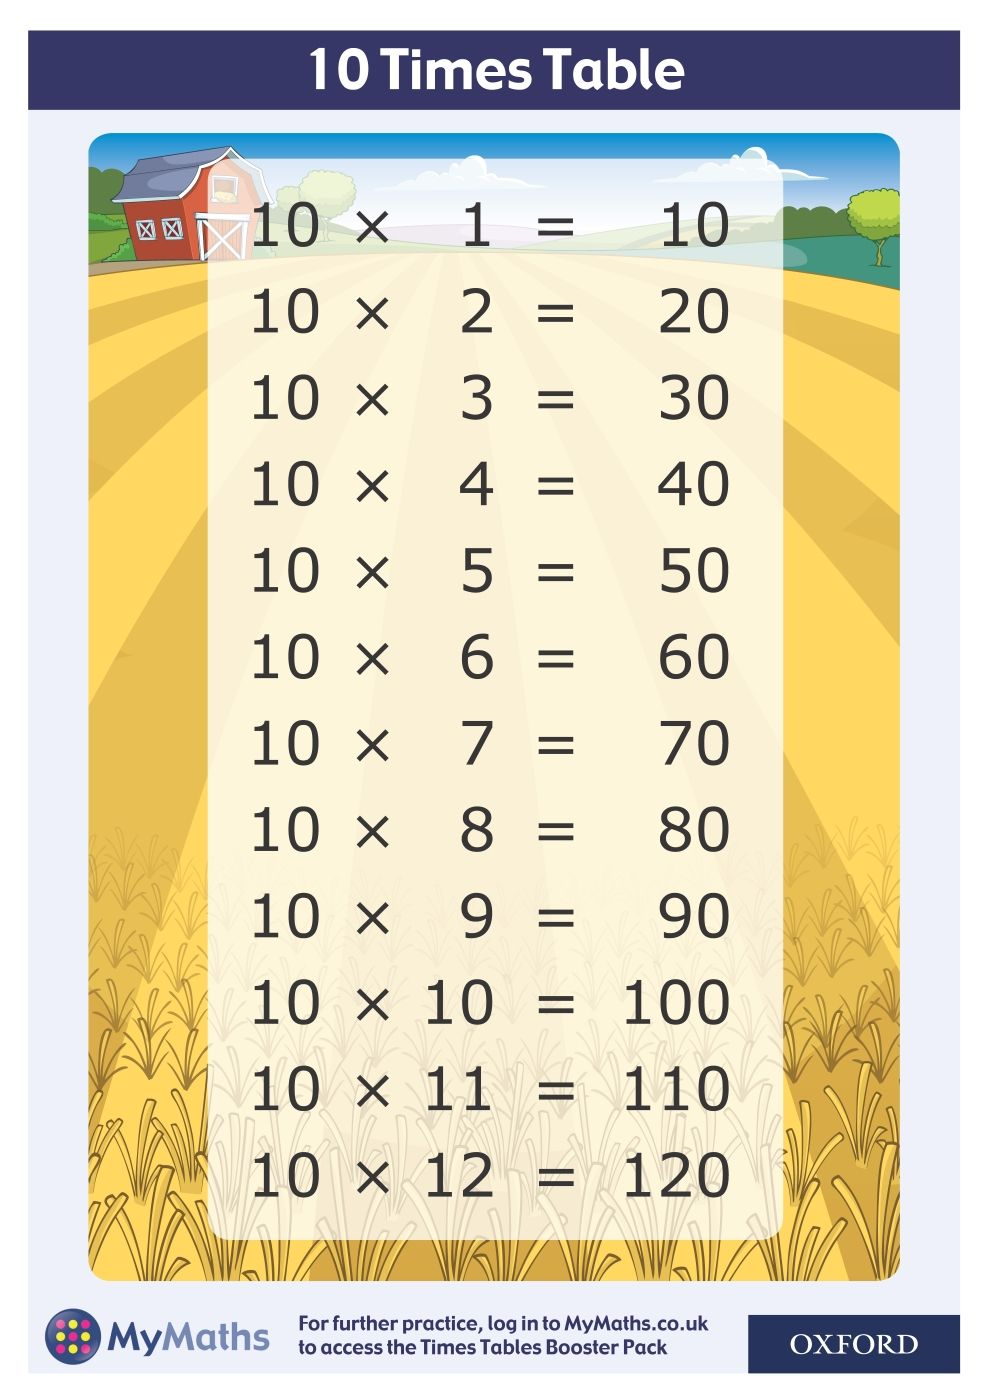 Download A Free Mymaths 10 Times Table Poster A4 To Help Your Class Master Their Times Tables Here Https Oxf 10 Times Table Times Table Poster Times Tables [ 1400 x 990 Pixel ]